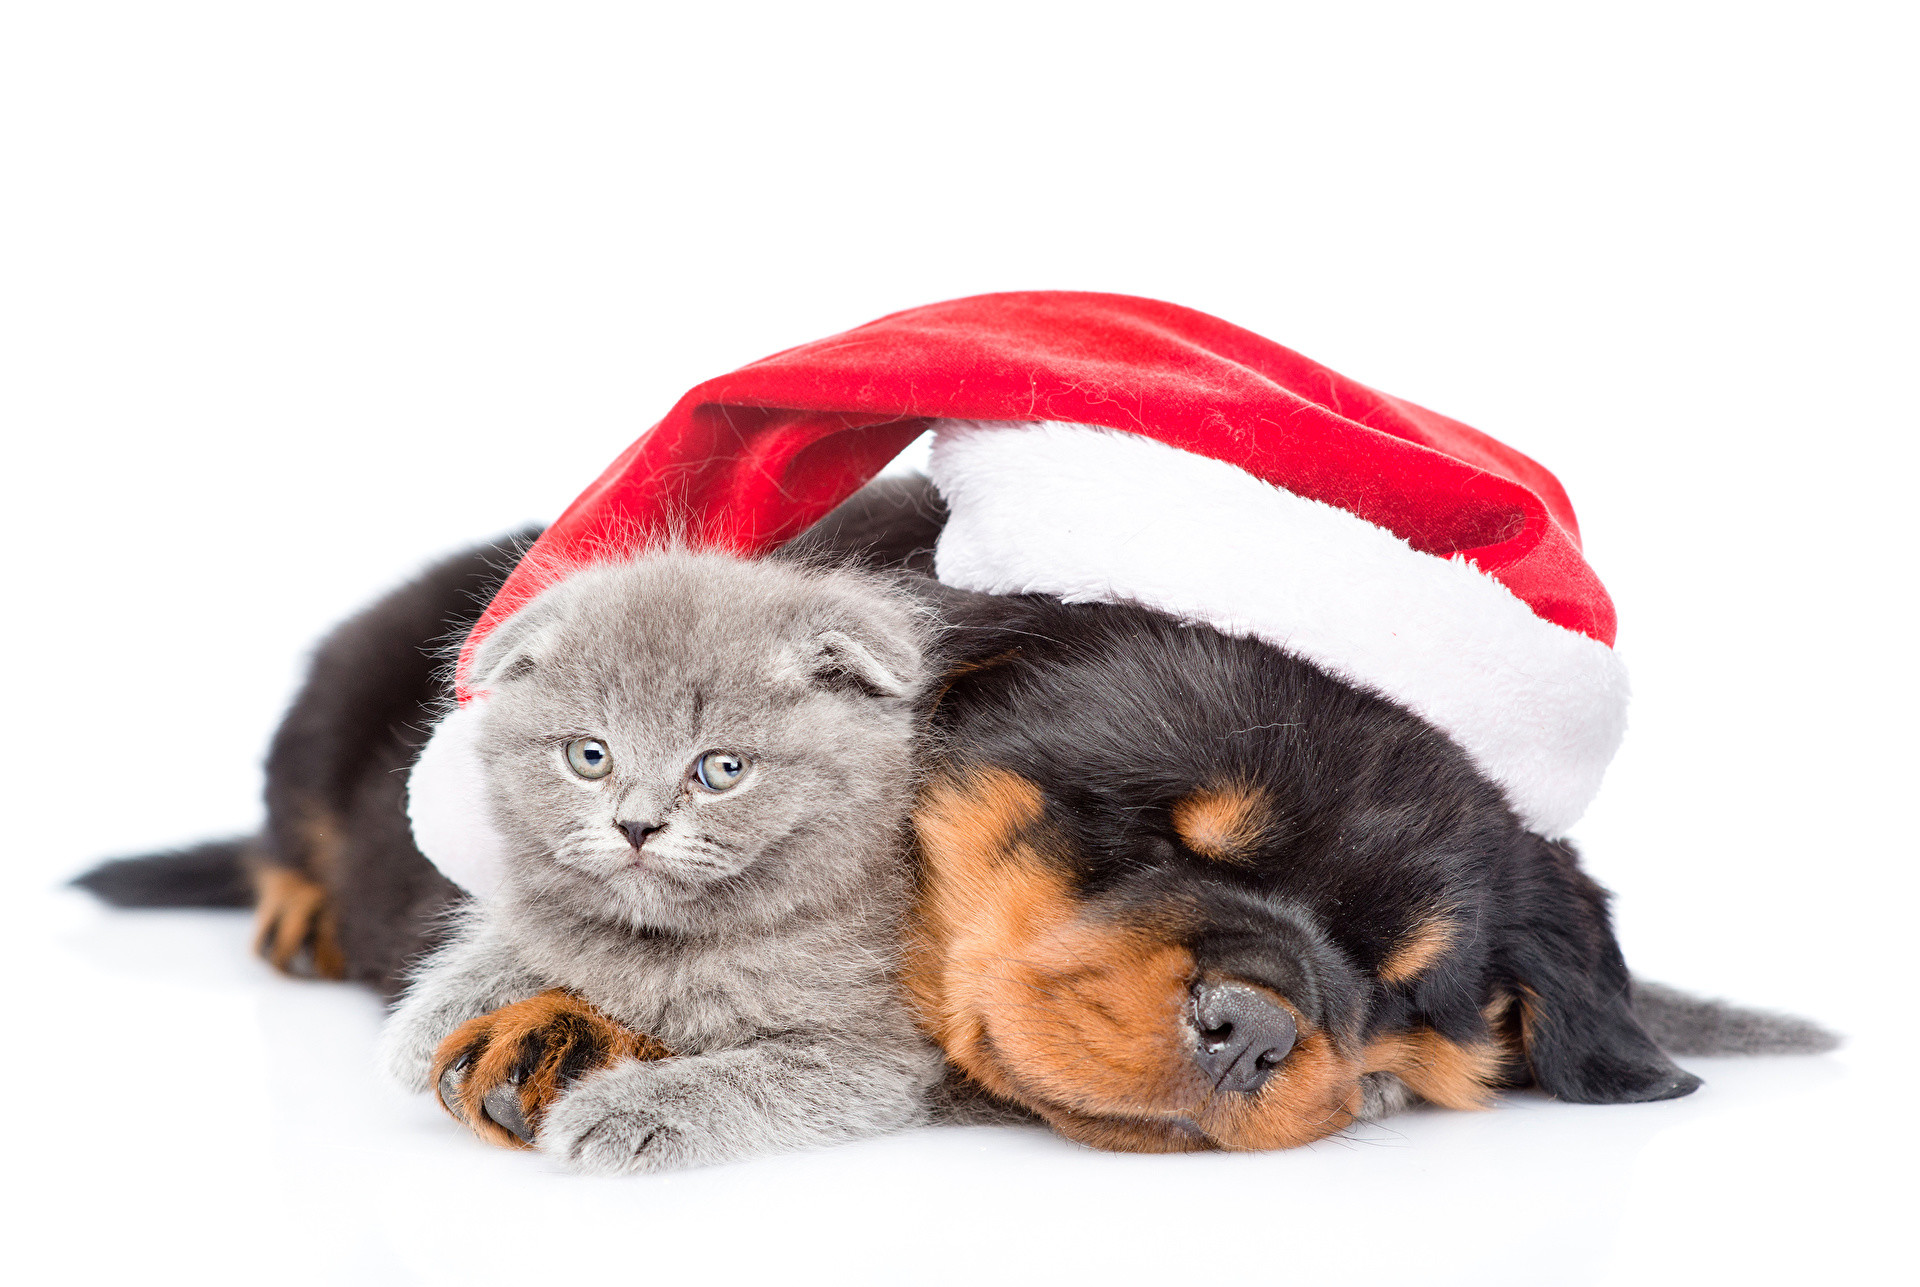 1920x1287 Wallpapers kitty cat Rottweiler Dogs Cats New year Winter hat Animals White  background  Kittens Christmas